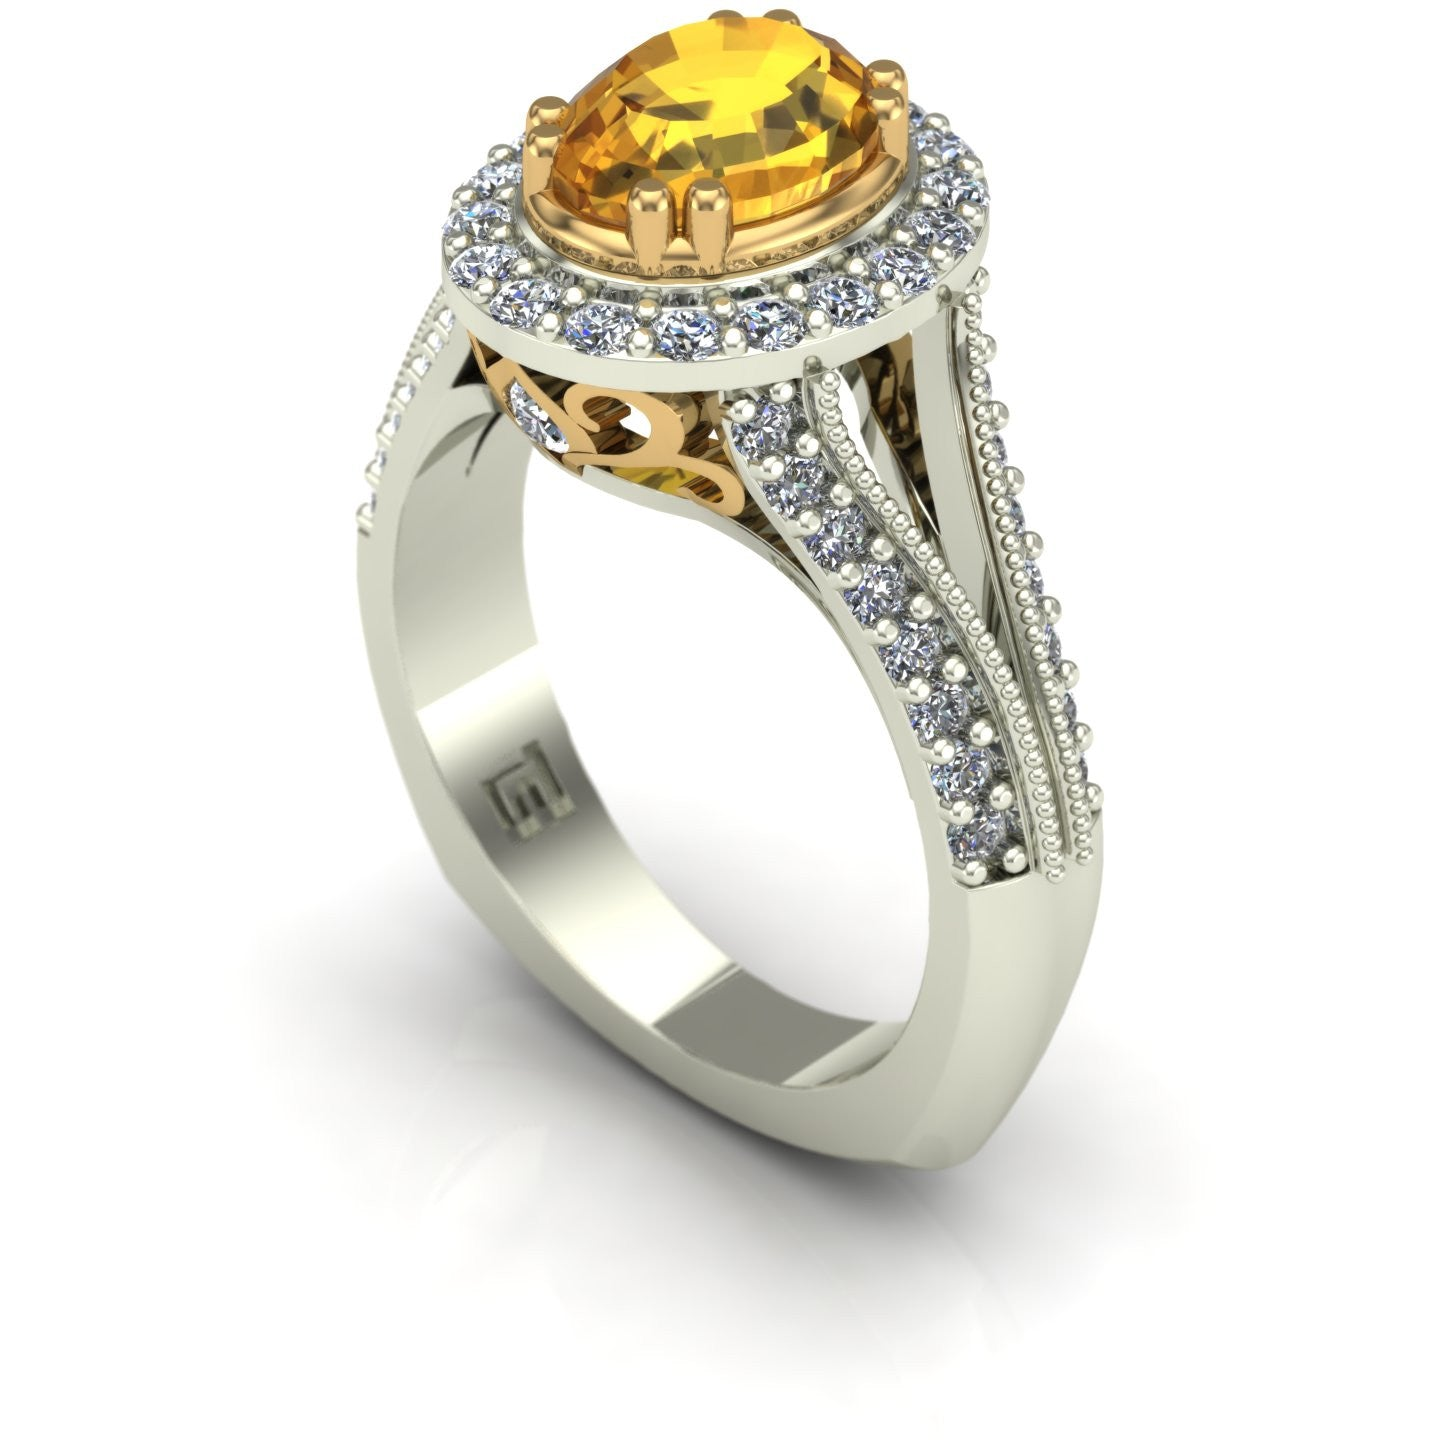 Yellow sapphire and diamond oval scroll ring in 14k yellow and white gold